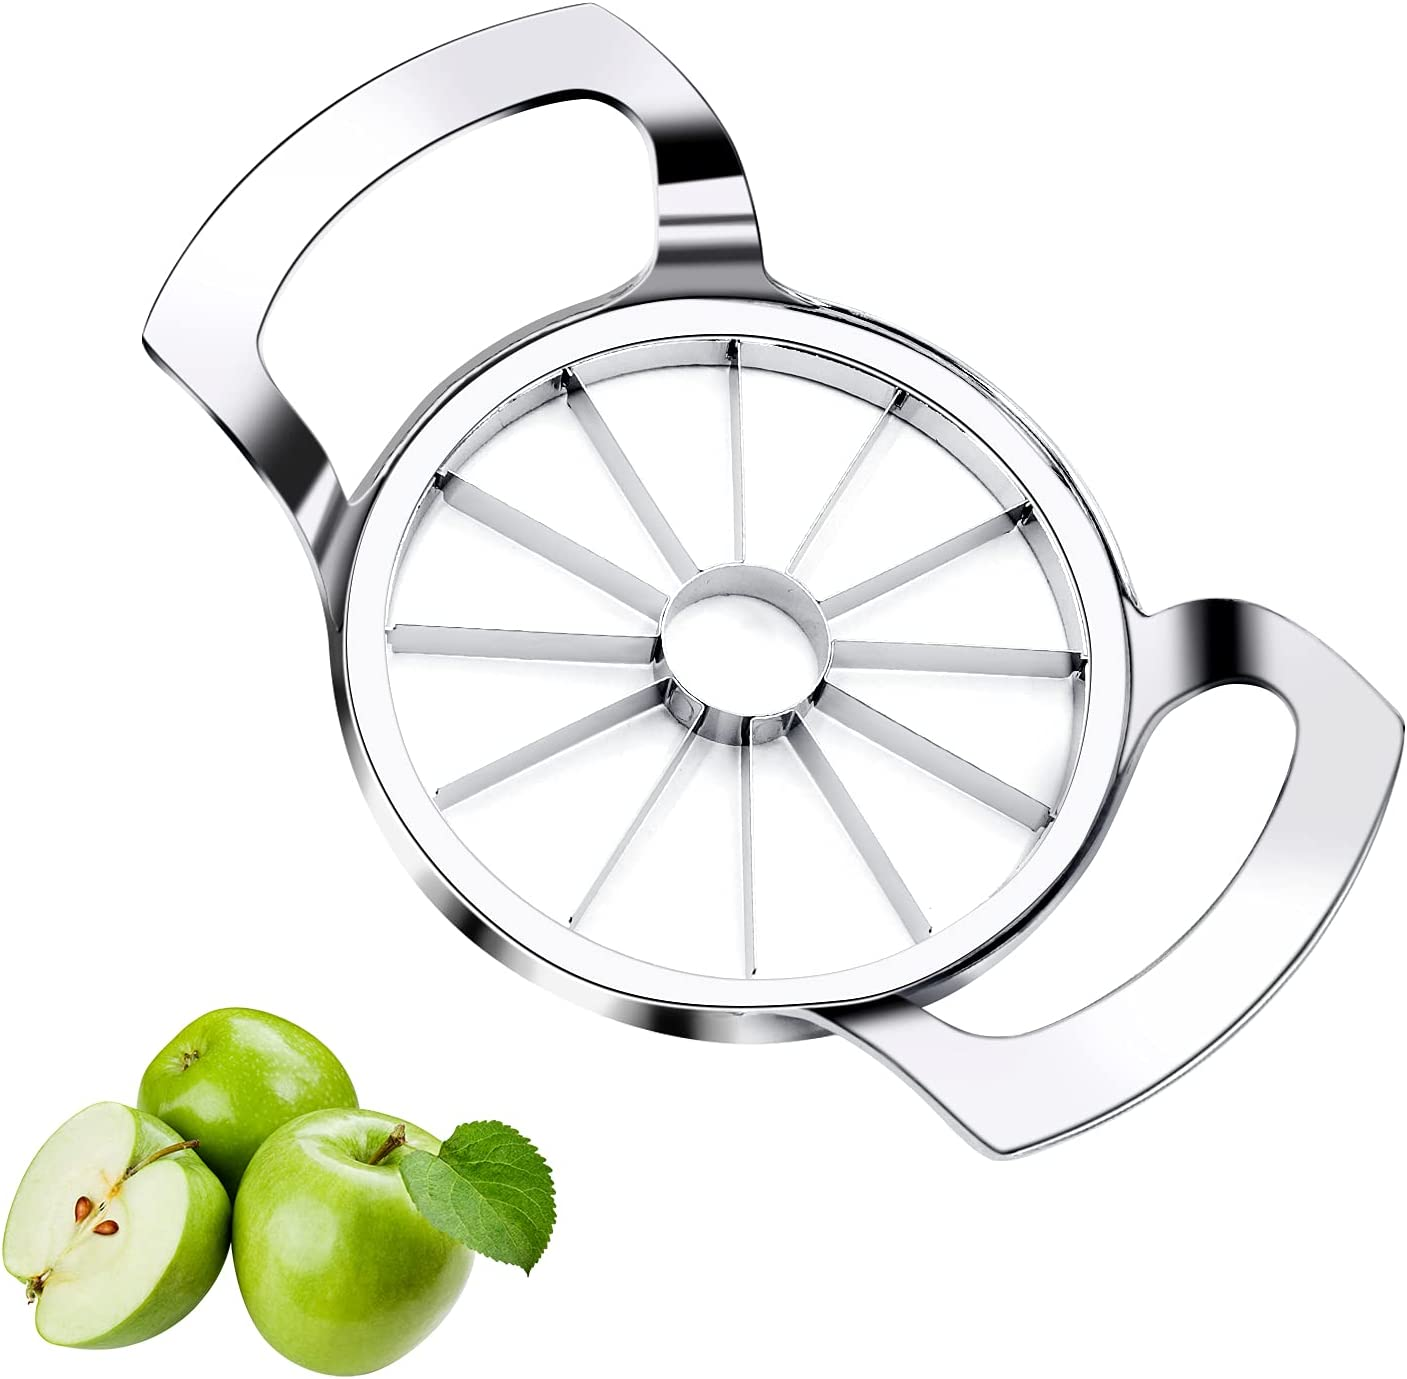 Stainless-steel Apple Directly managed store Slicer 12 Blades favorite Sharp and Sli Corer